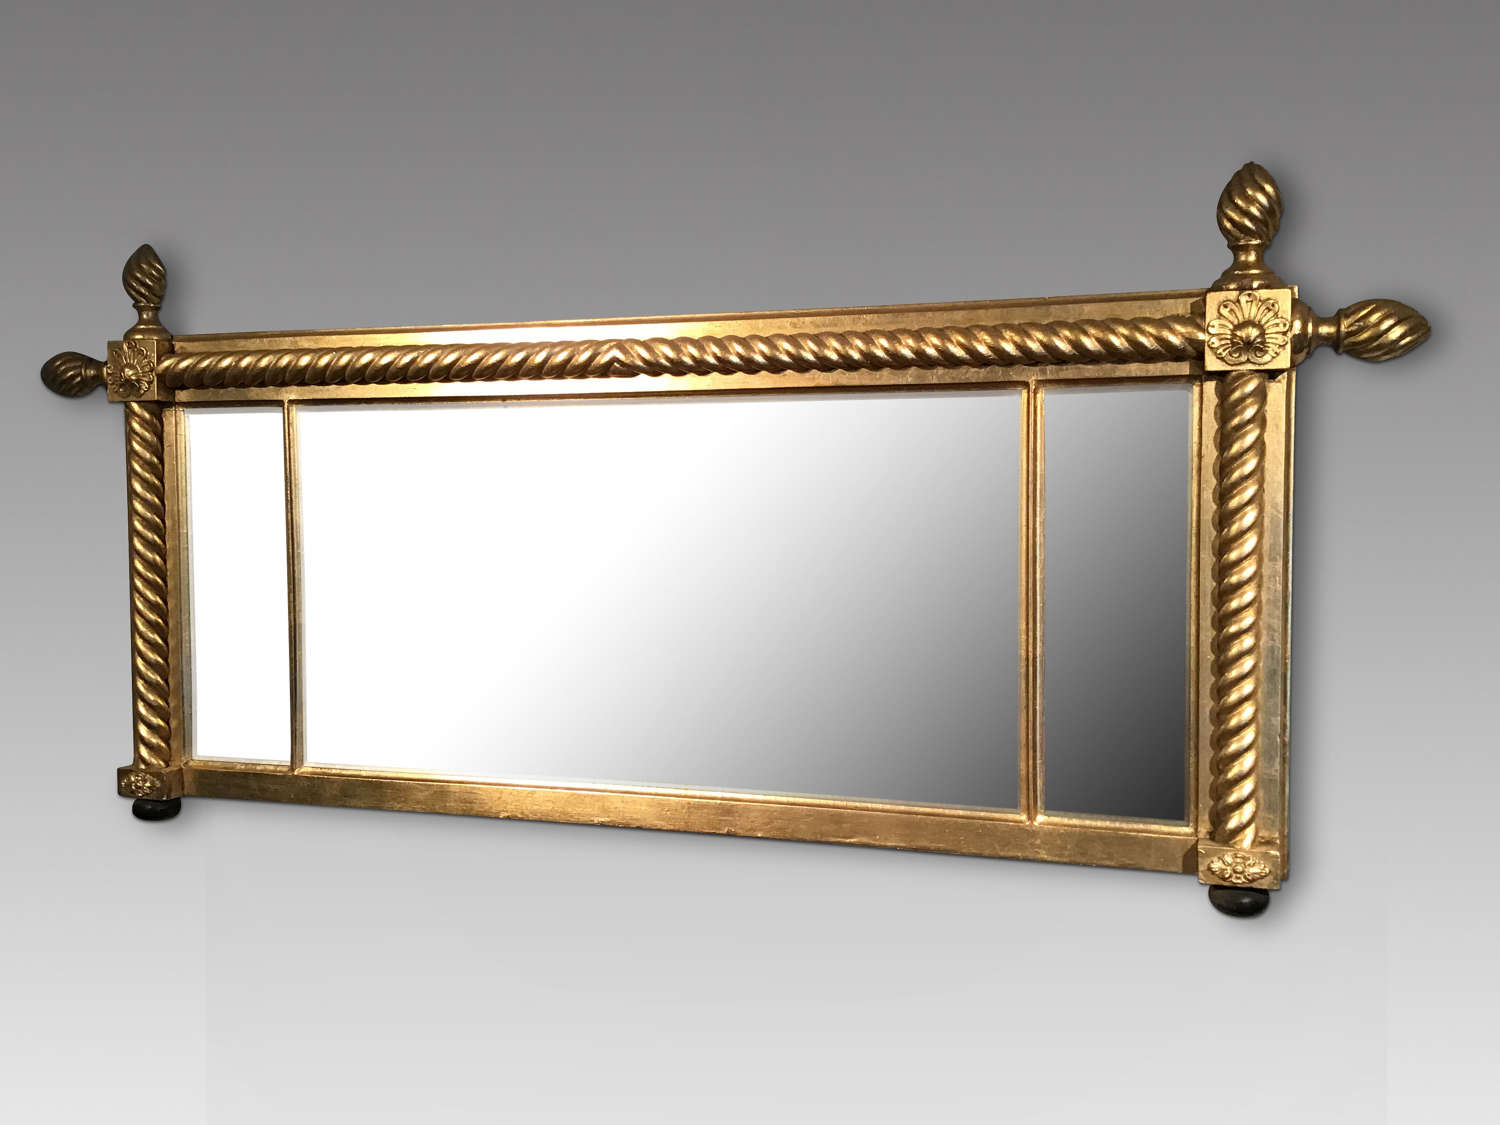 Antique gilt overmantel mirror